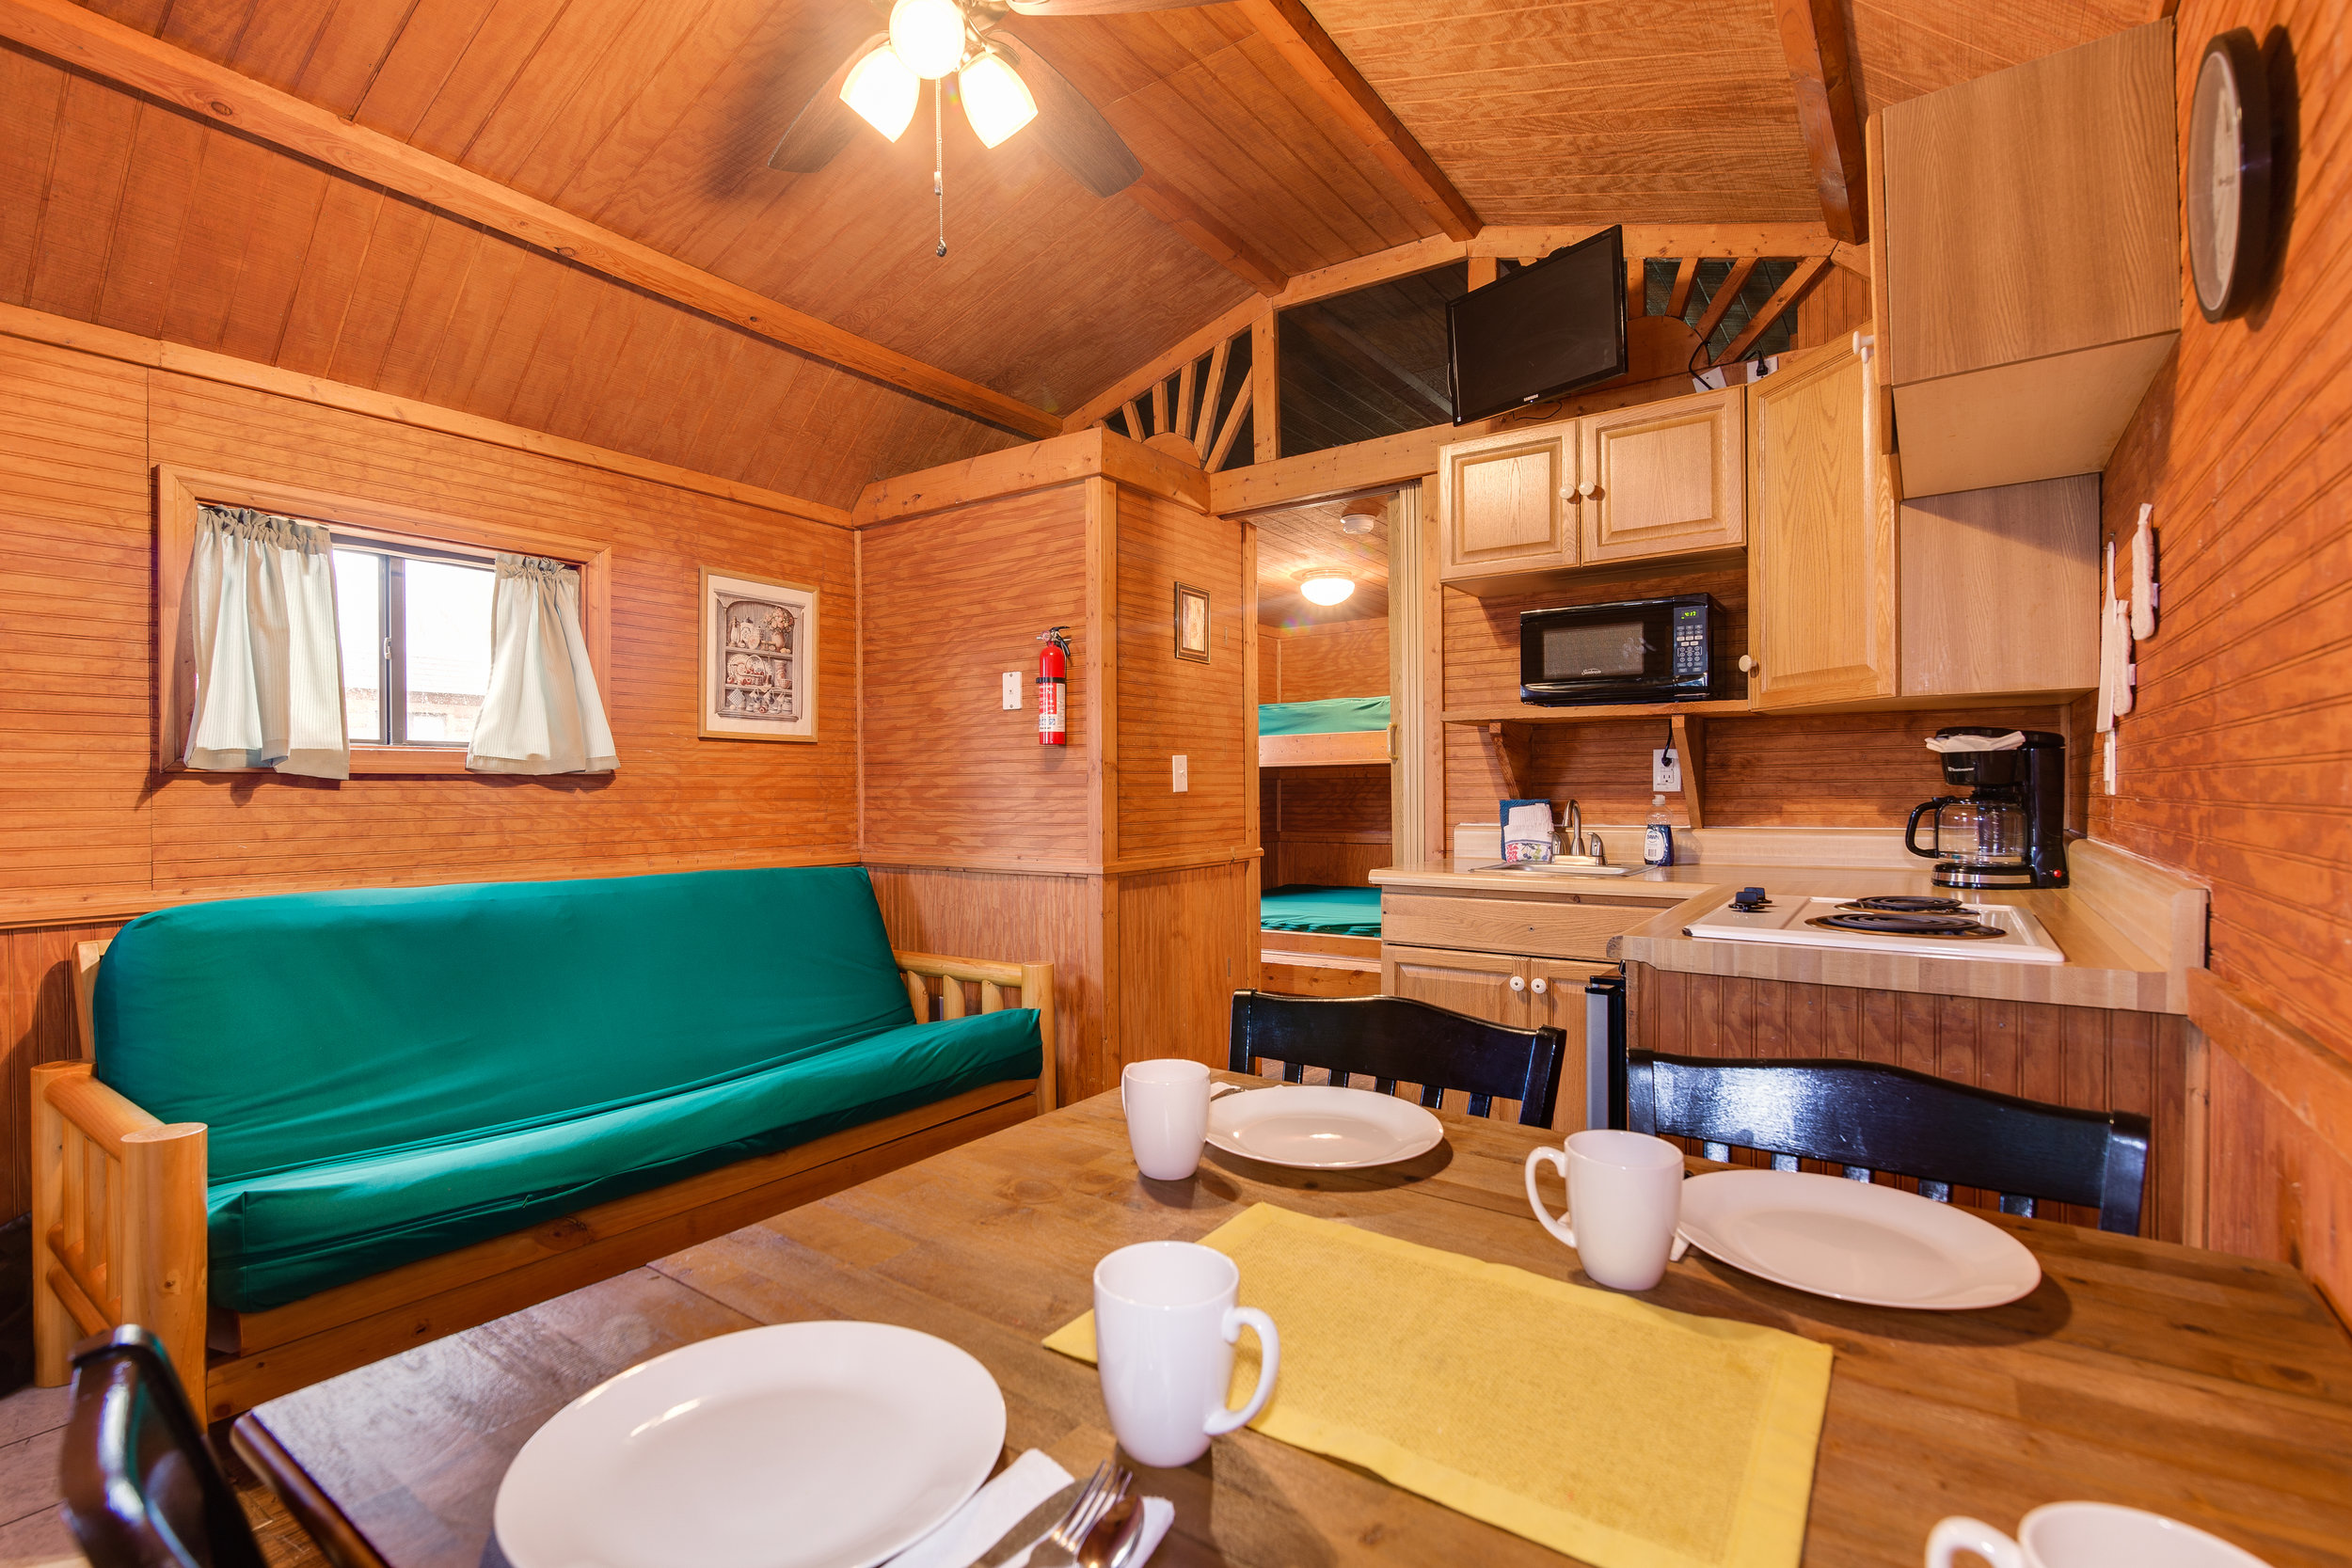 The deluxe cabins feature a futon in the living space, a table and chairs that seat four, and a partial kitchen (pictured). Kitchen linens, pots and pans, glasses, silverware, and dishes are included. There is also a television with campground cable.